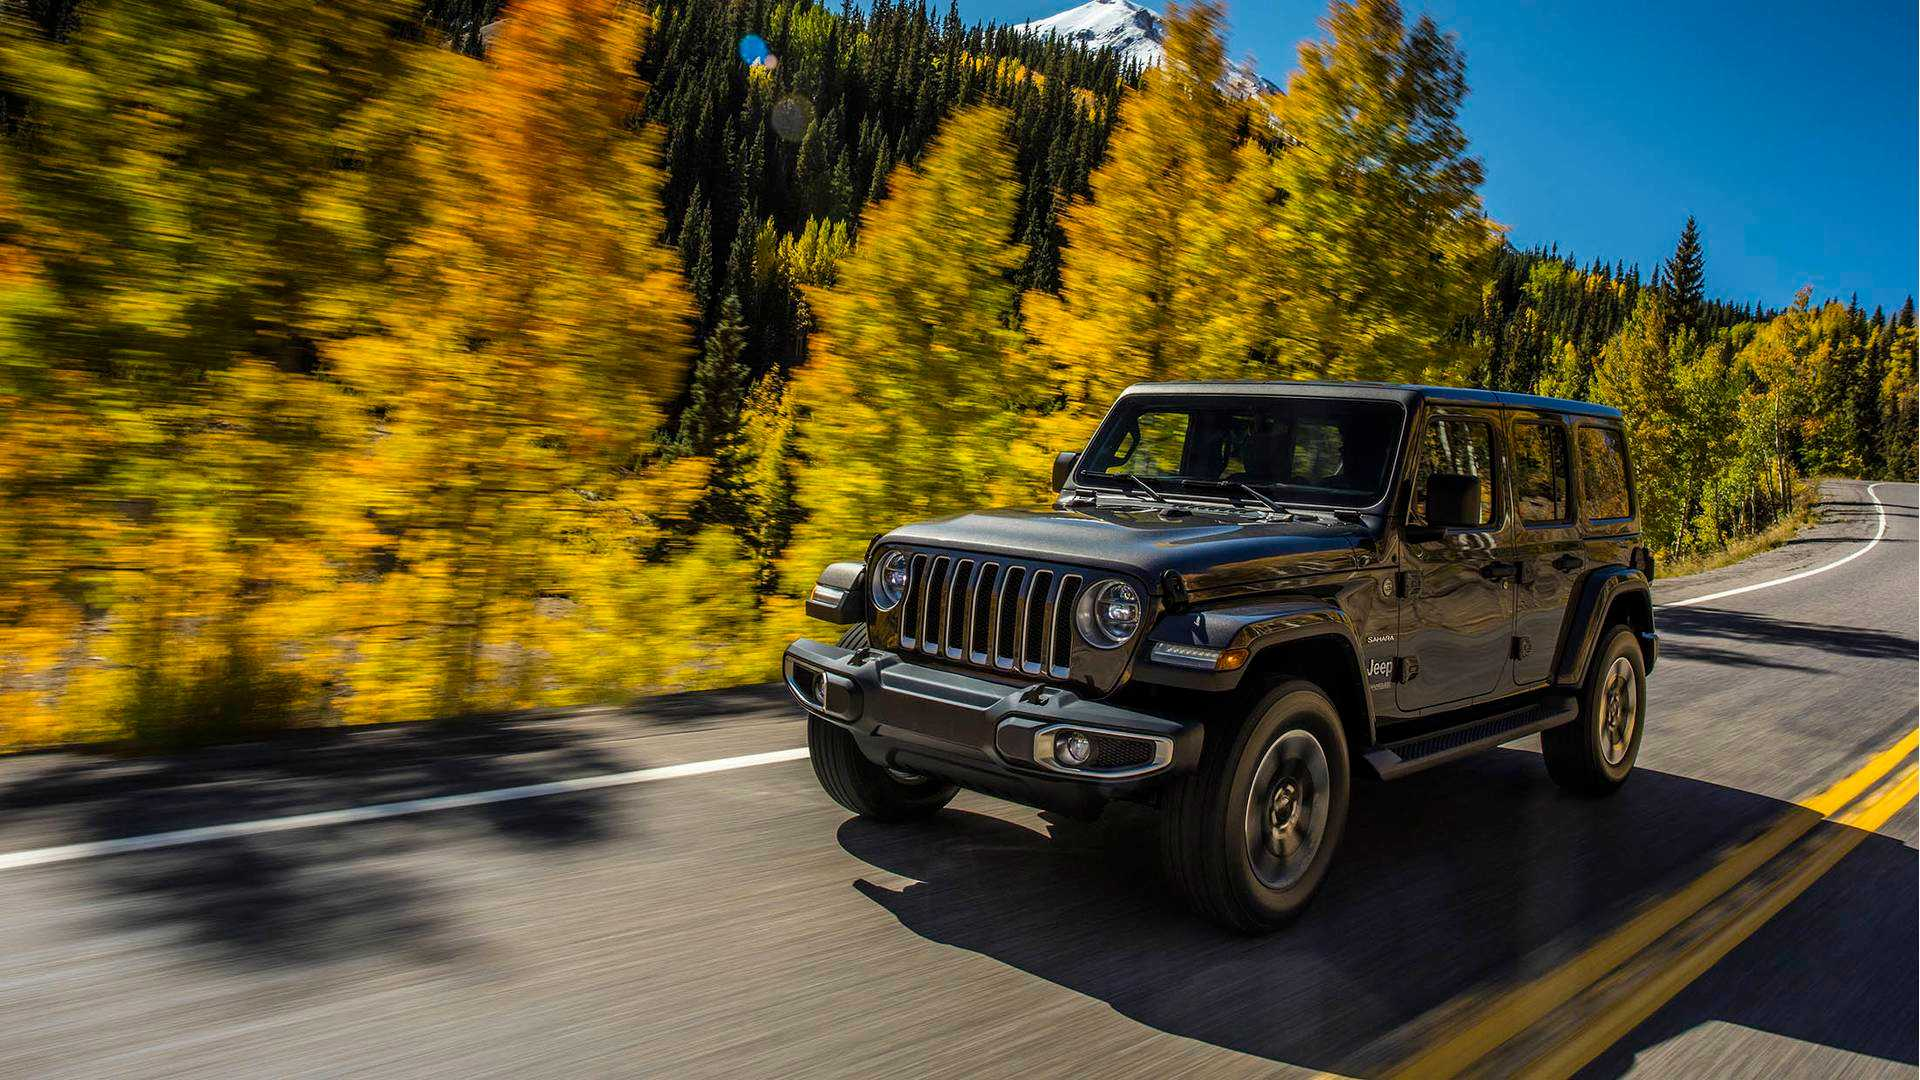 74 The Best 2020 Jeep Wrangler Plug In Hybrid Reviews